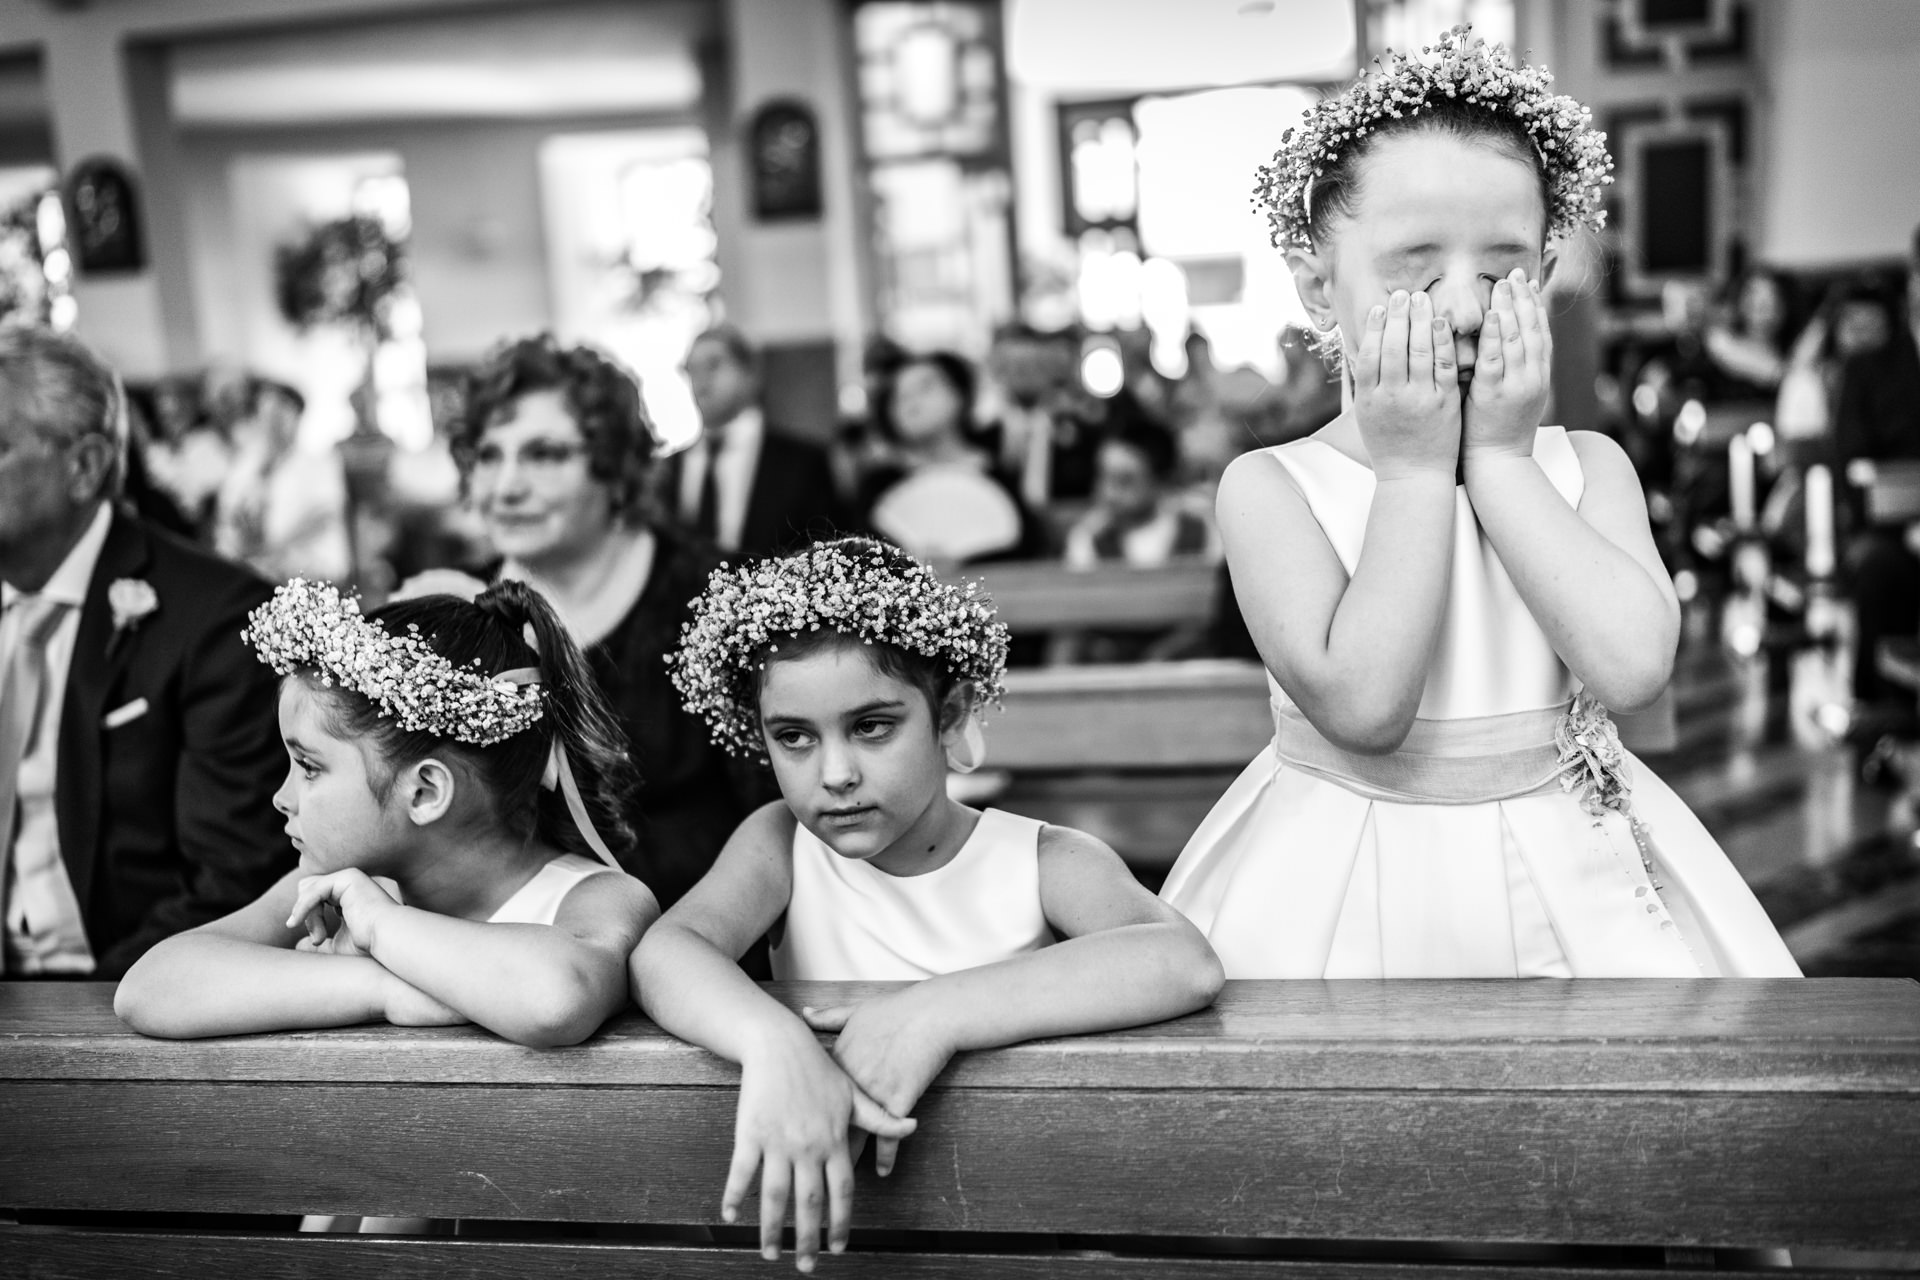 Federica Ariemma, of Napoli, is a wedding photographer for Lettere